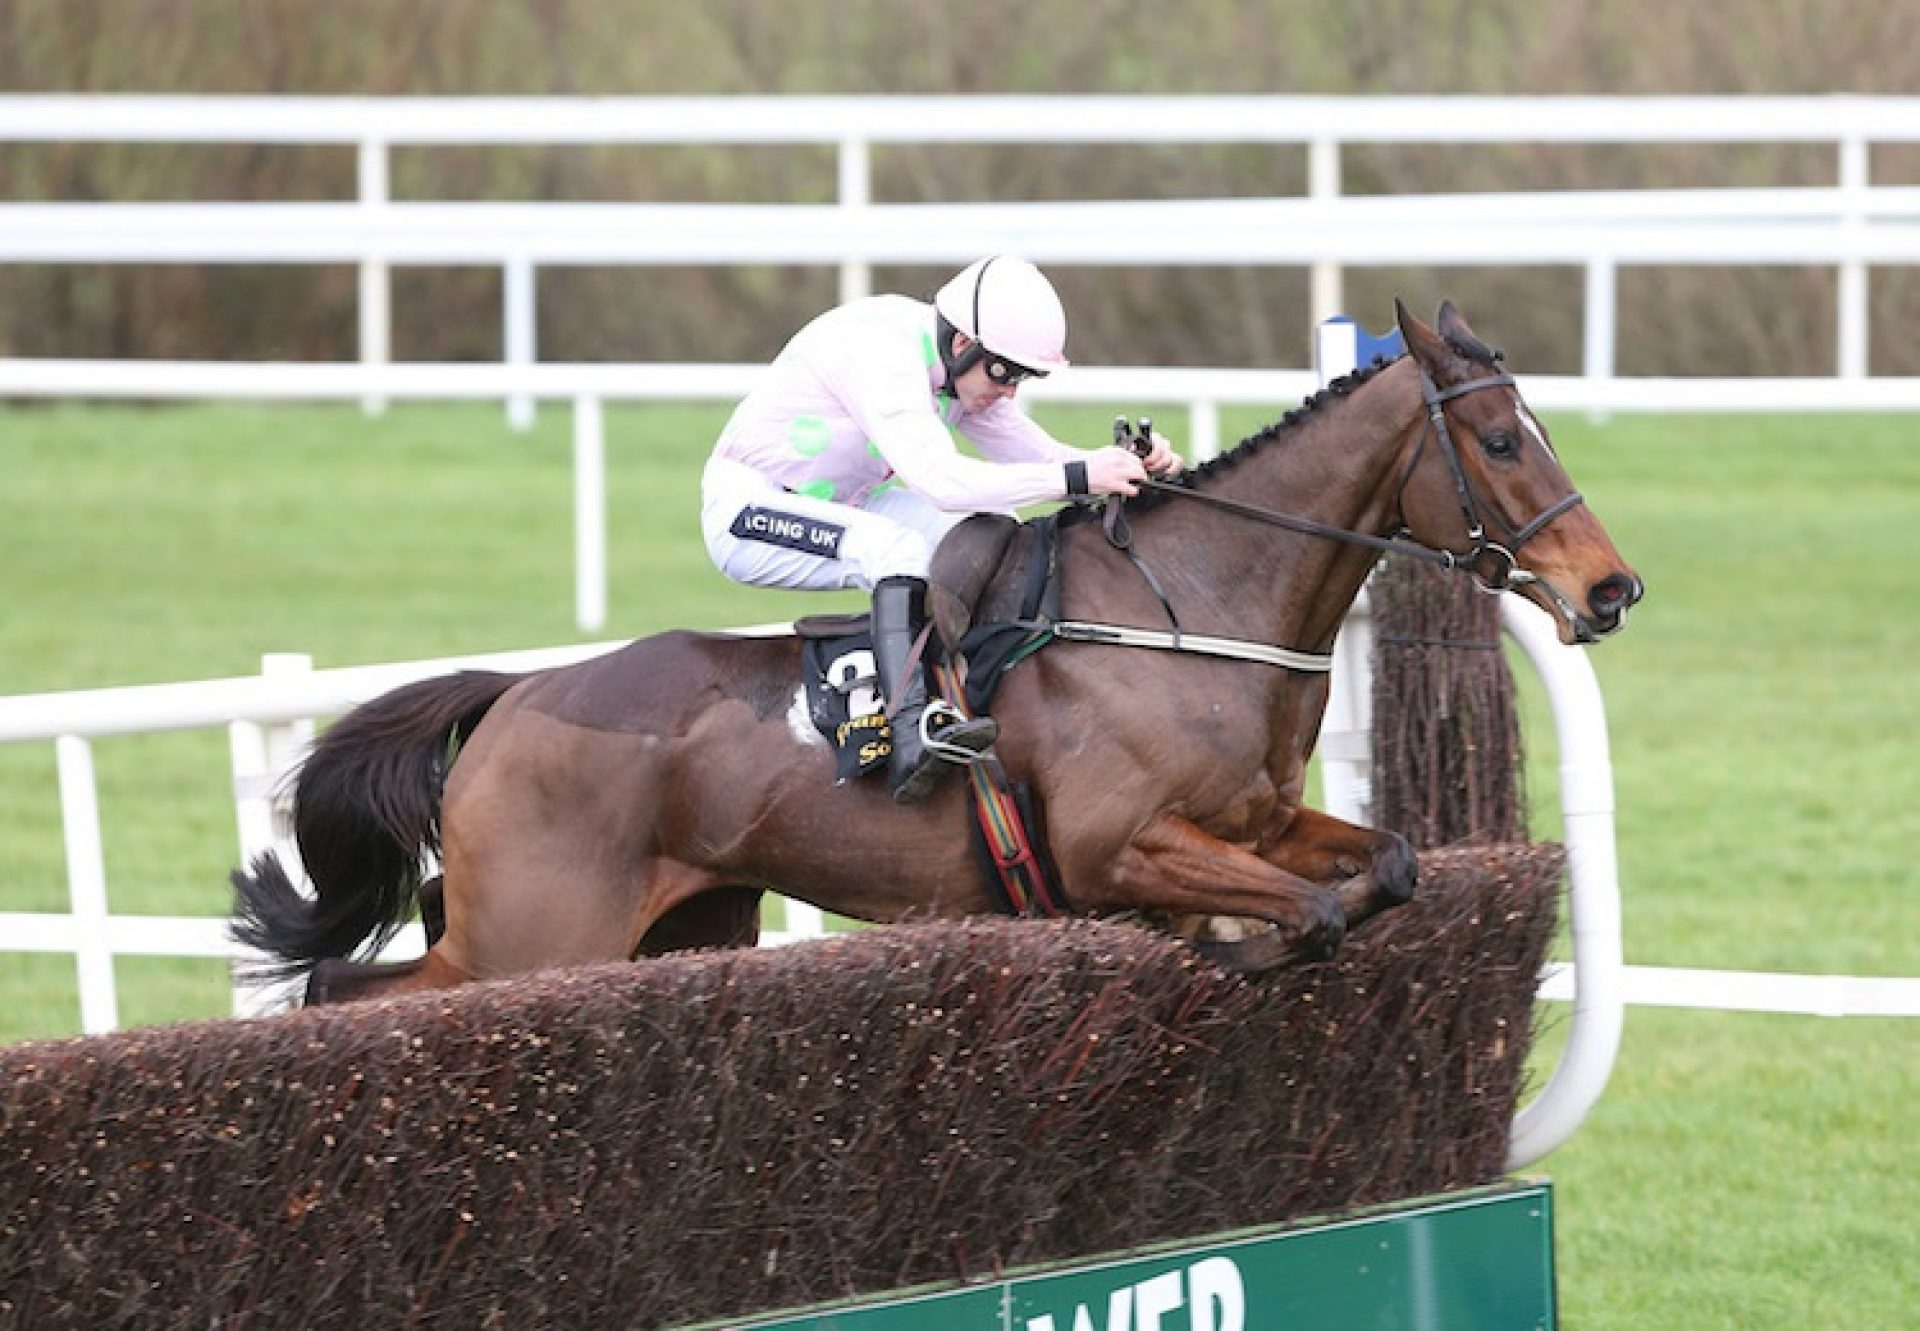 Douvan (Walk In The Park) winning the G1 Arkle Novice Chase at Leopardstown